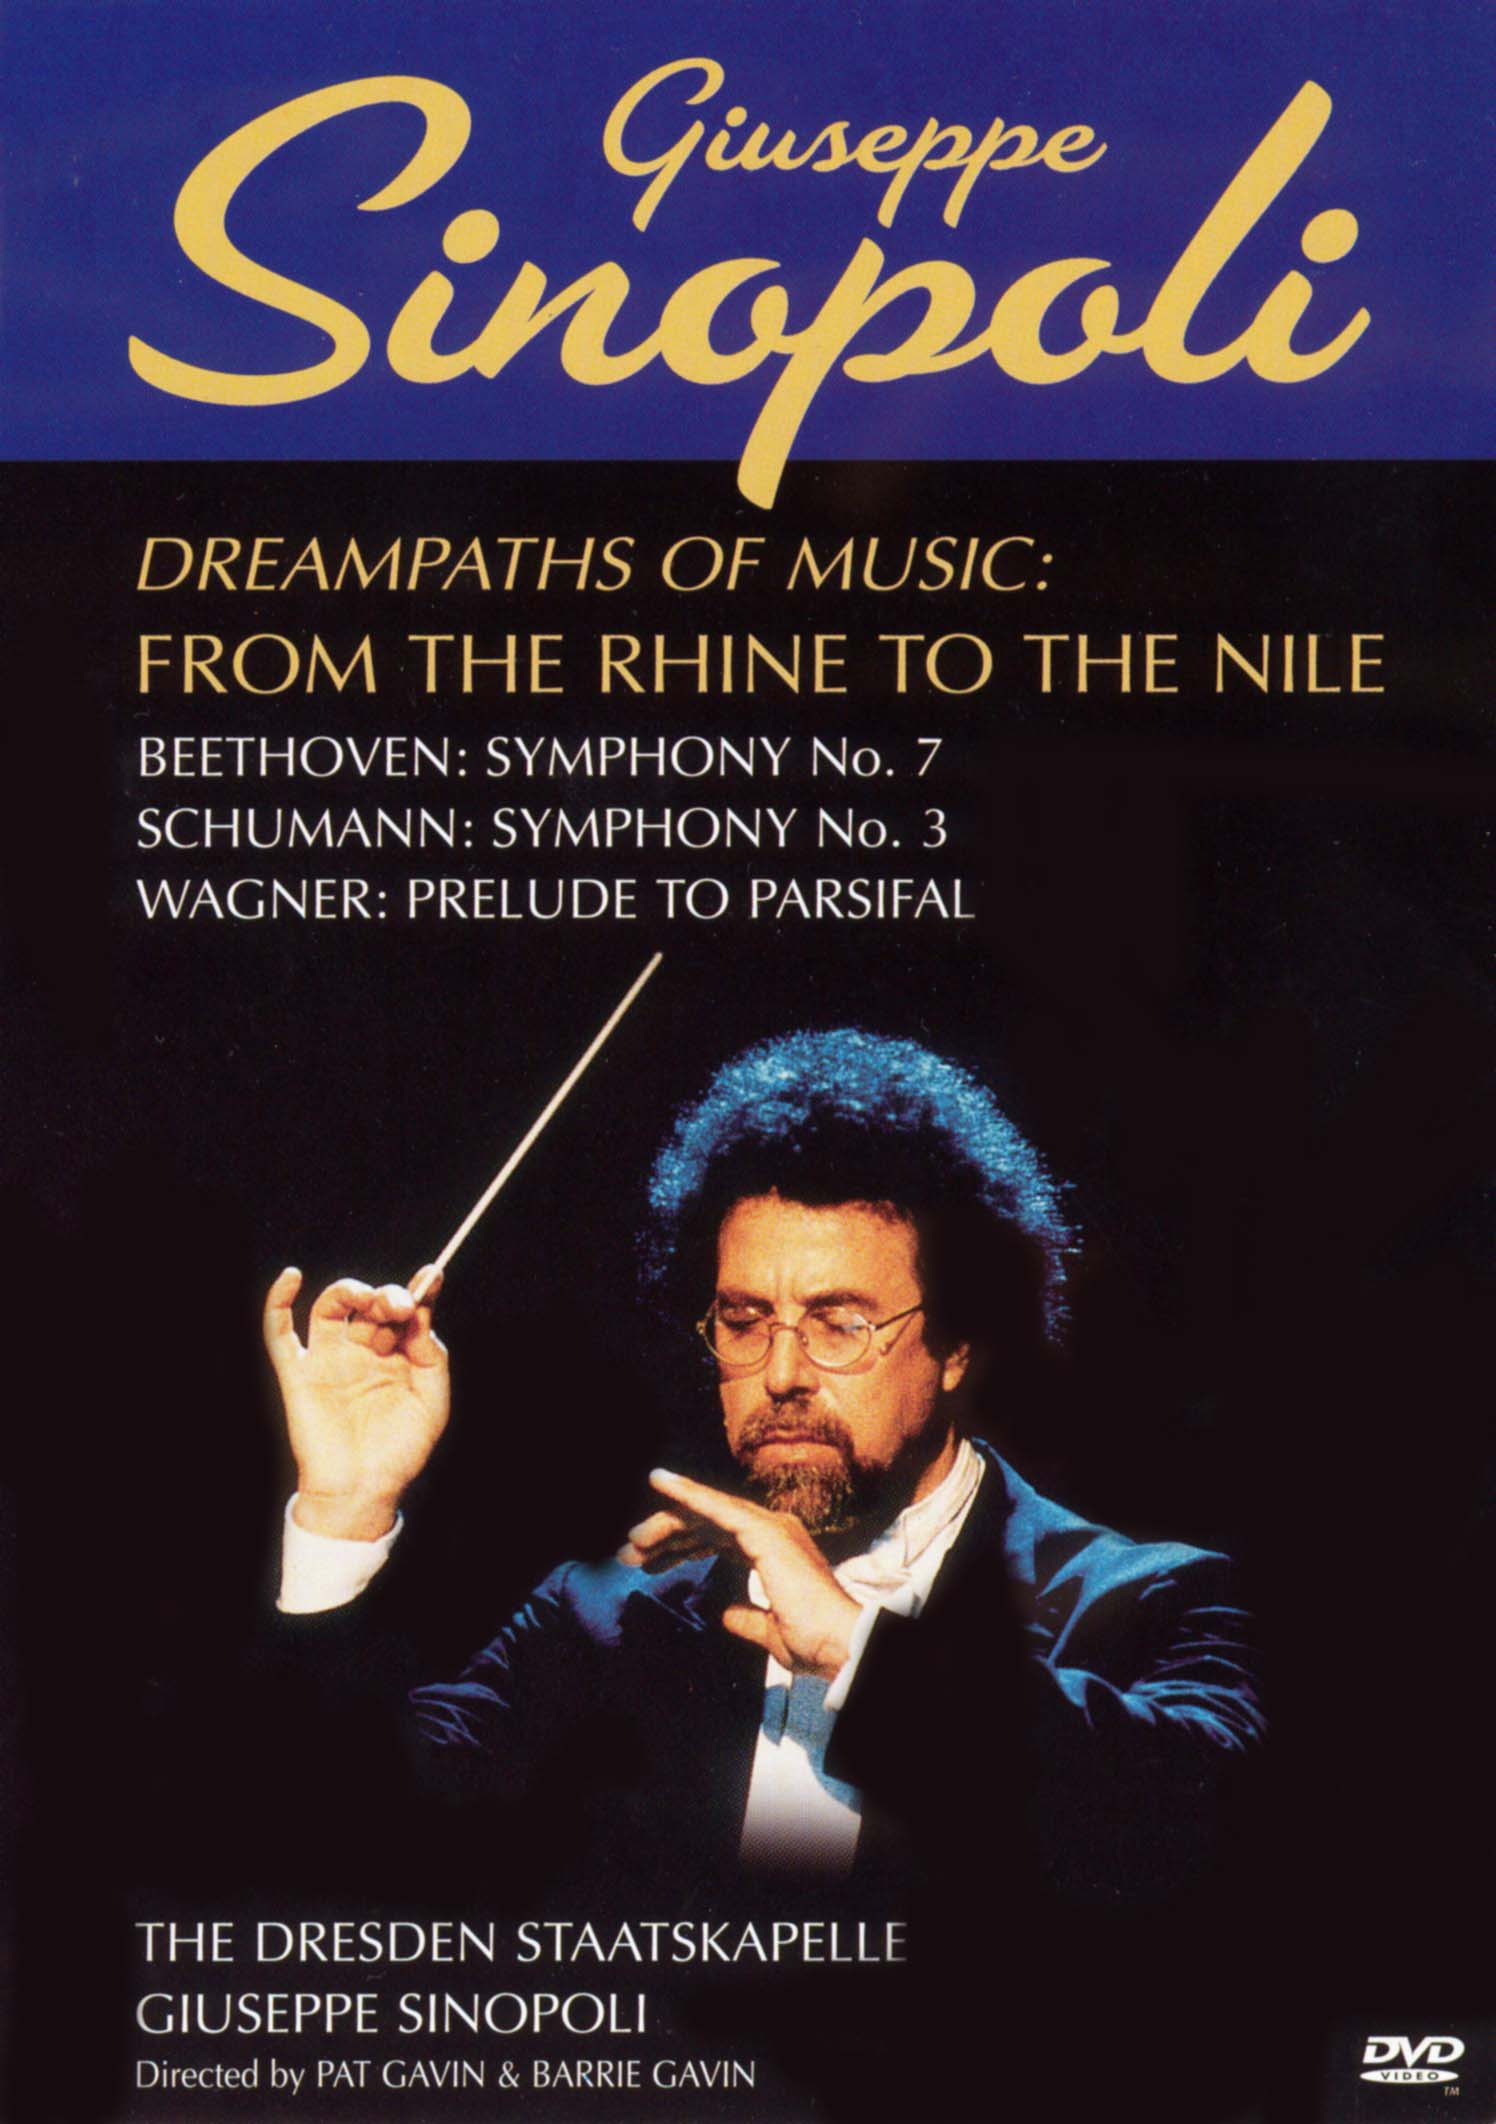 Giuseppe Sinopoli: Dreampaths of Music - From the Rhine to the Nile